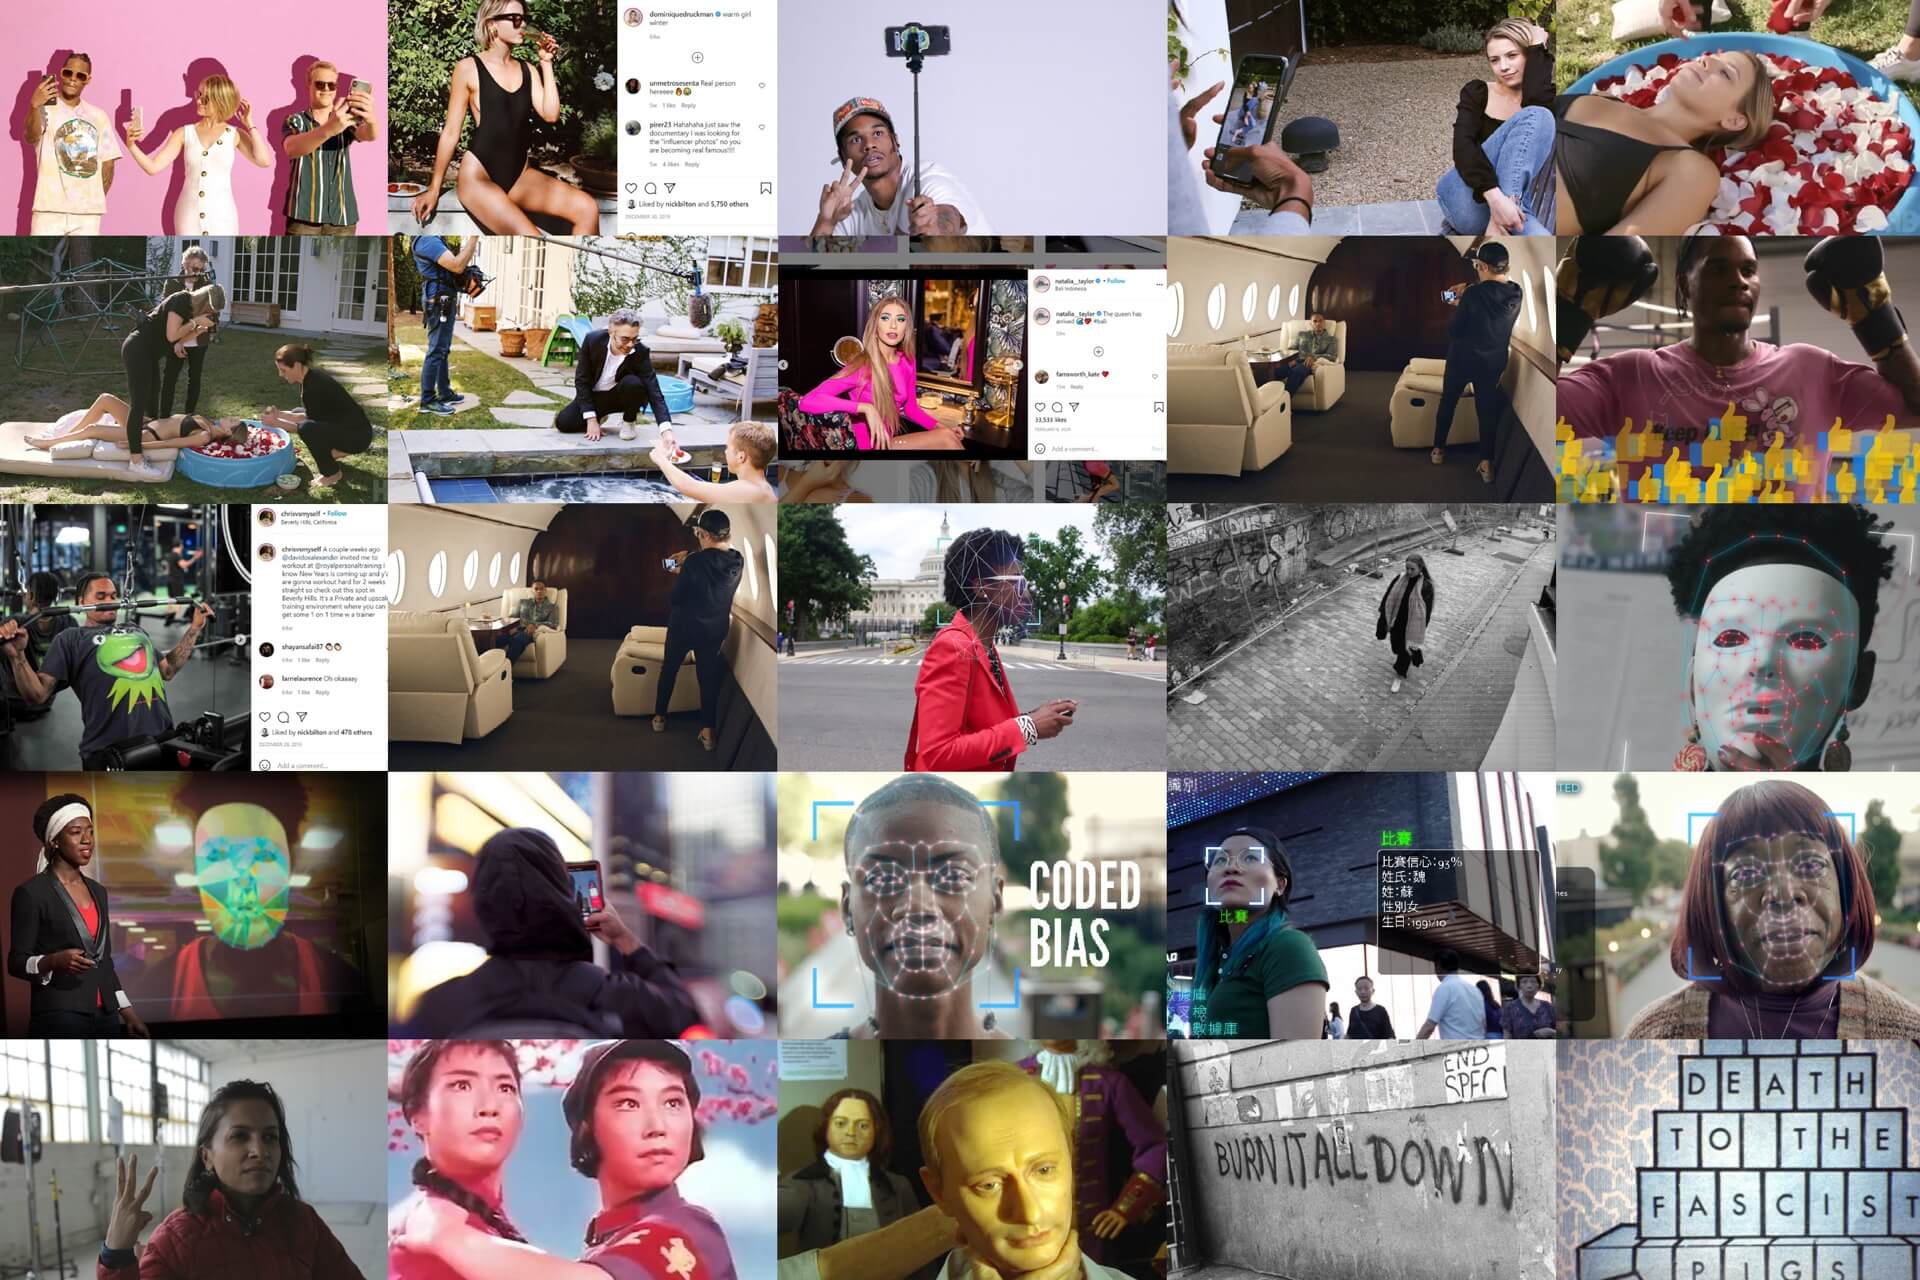 BROKEN PROMISES — Three documentaries trace our changing relationship to the internet